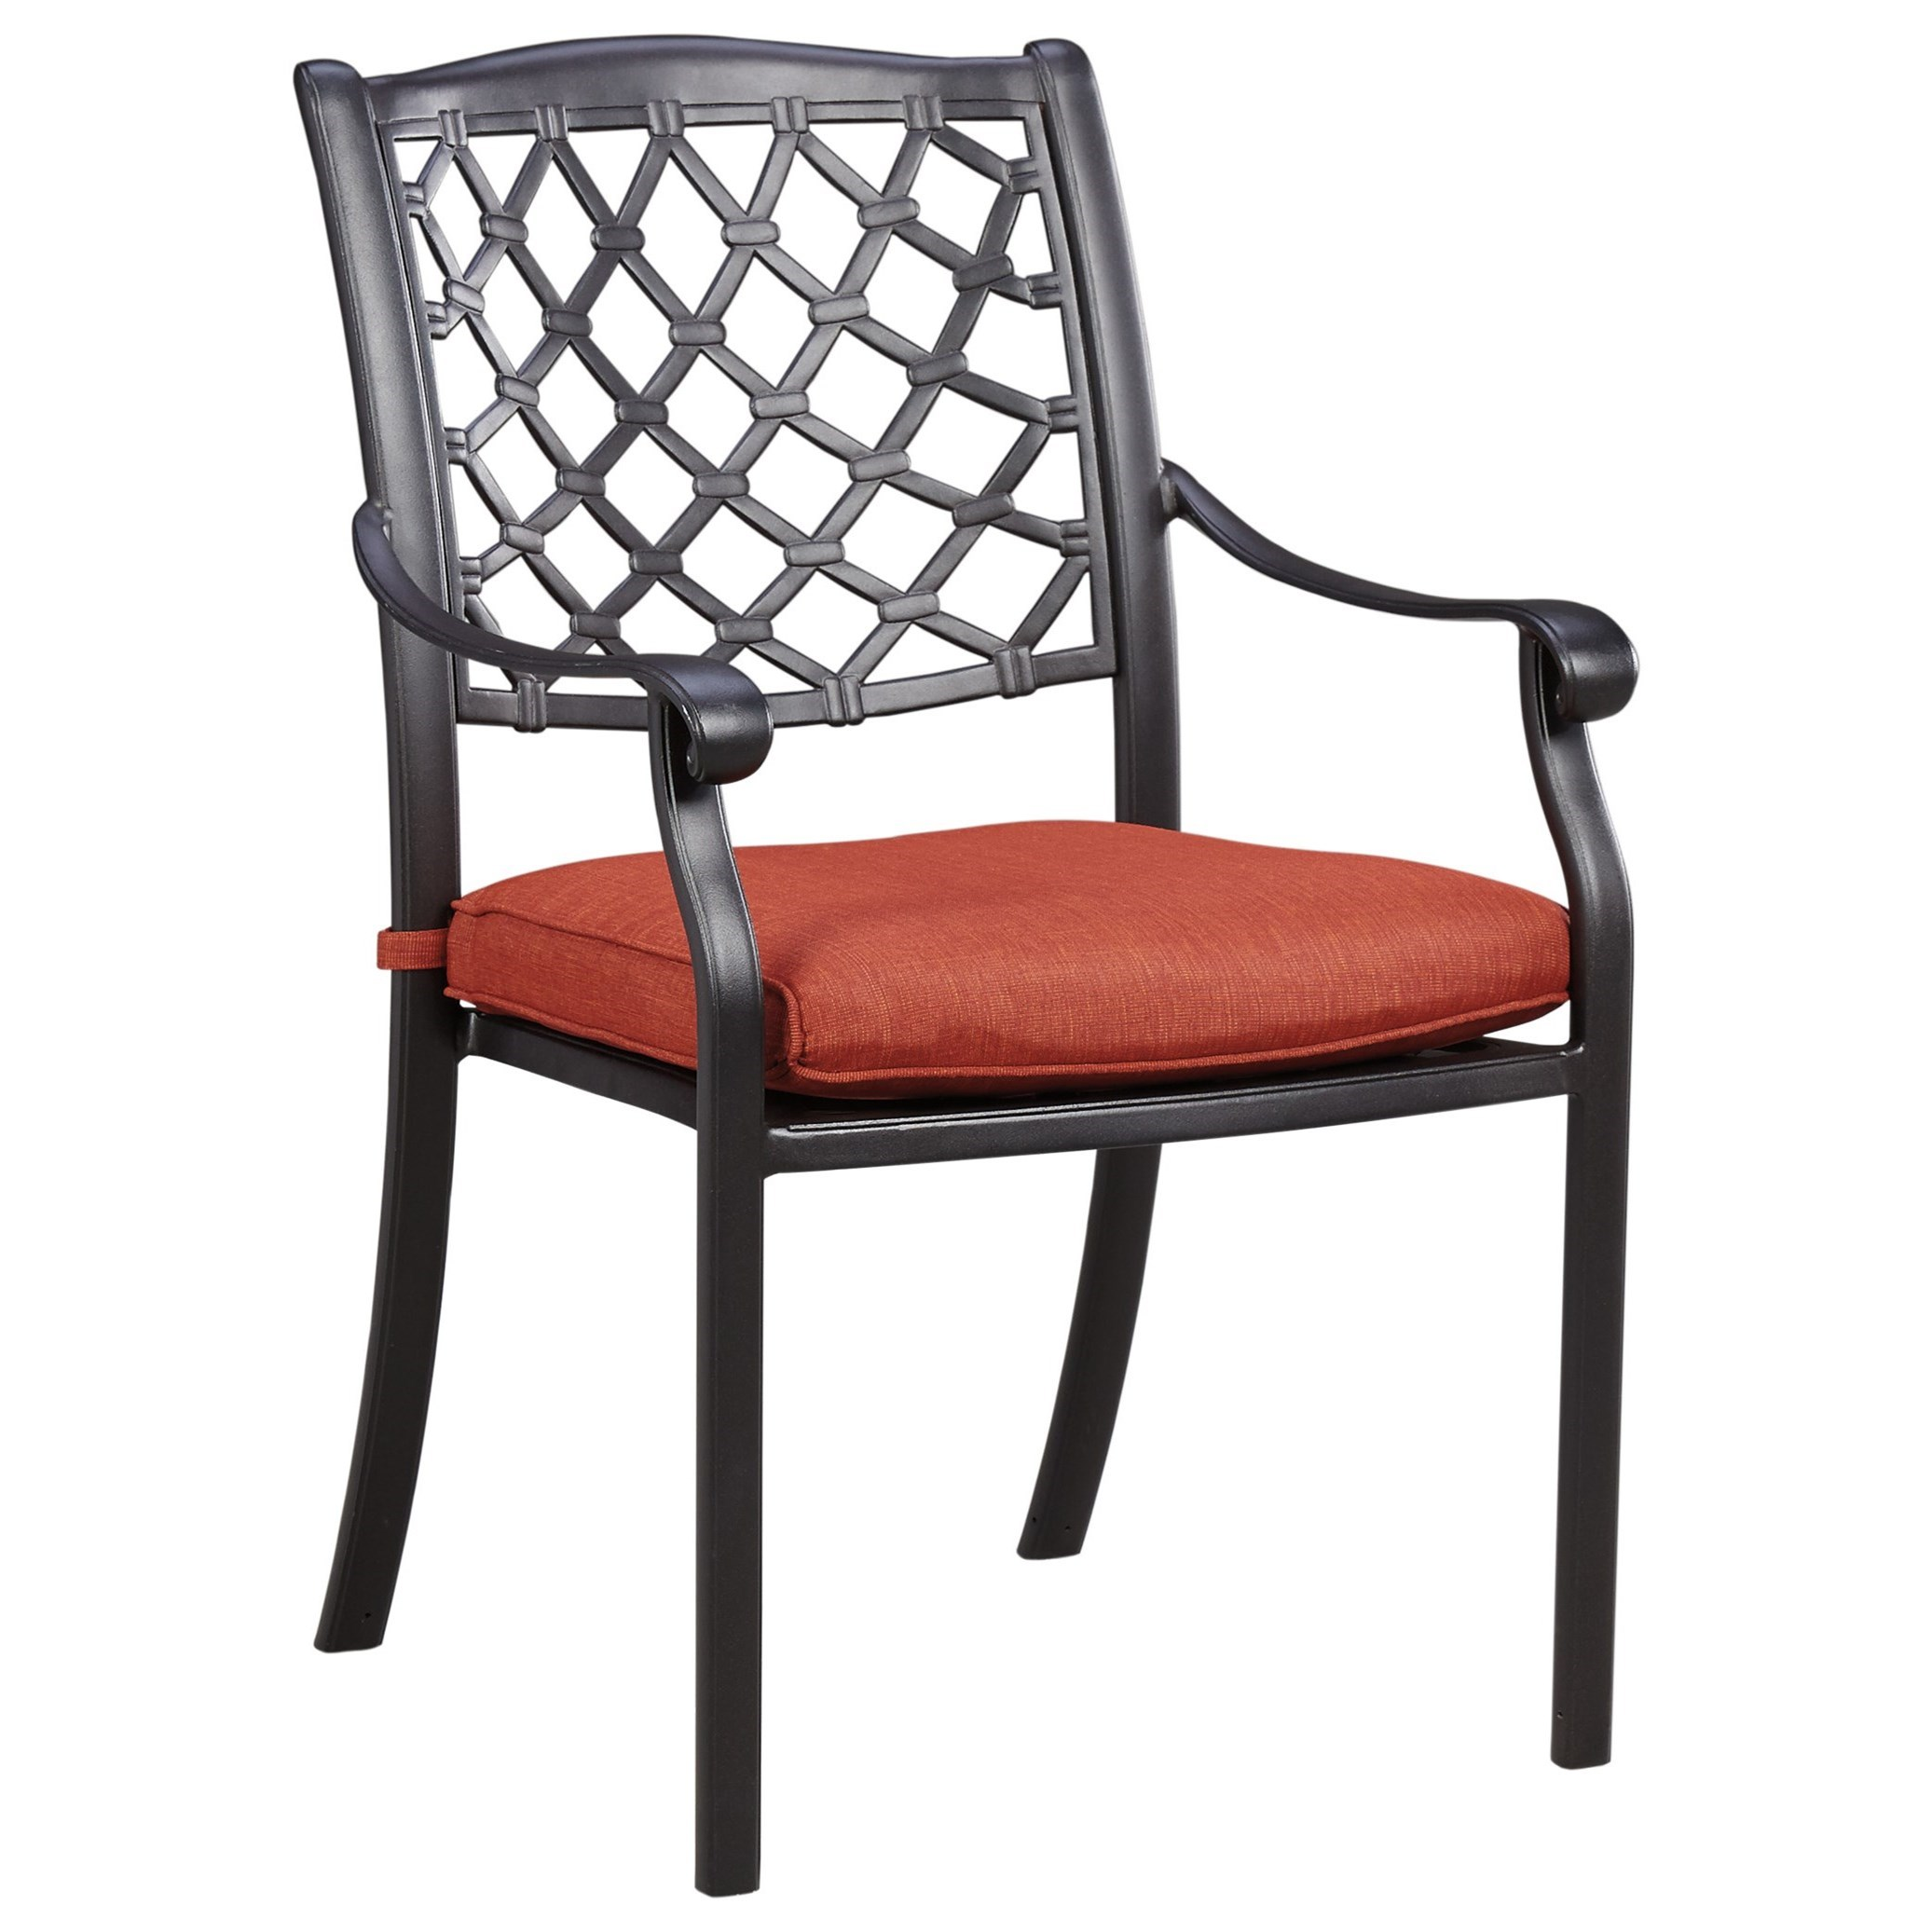 Signature Design by Ashley Tanglevale Set of 4 Outdoor Chairs with Cushion - Item Number: P557-601A